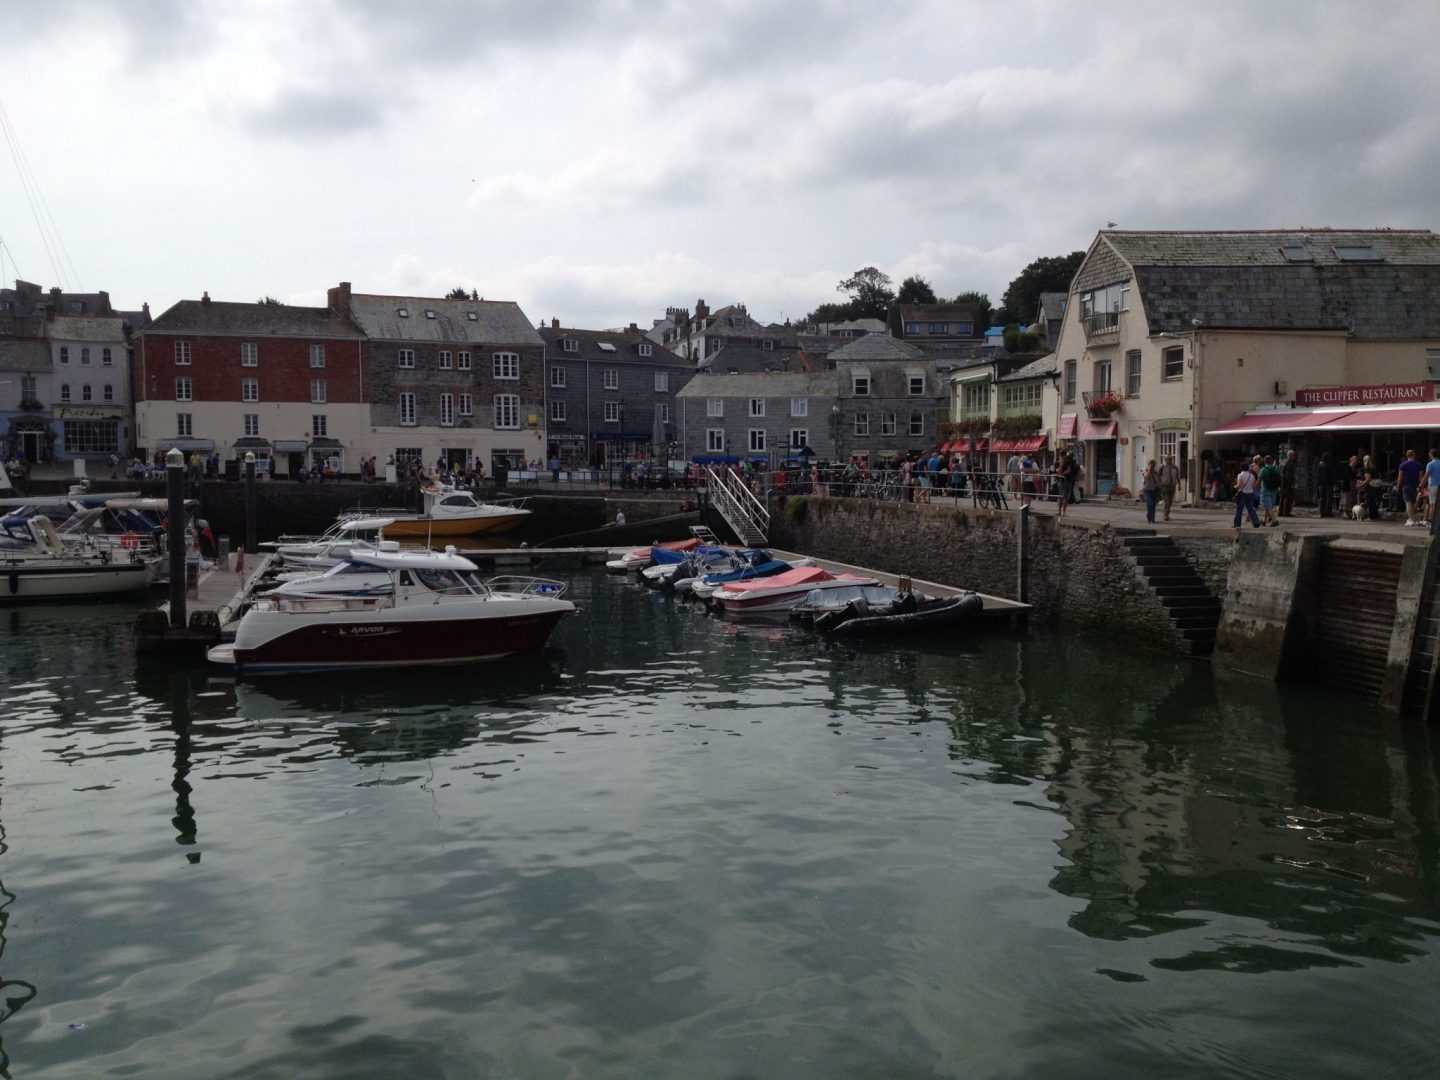 Harbour at Padstow, Cornwall